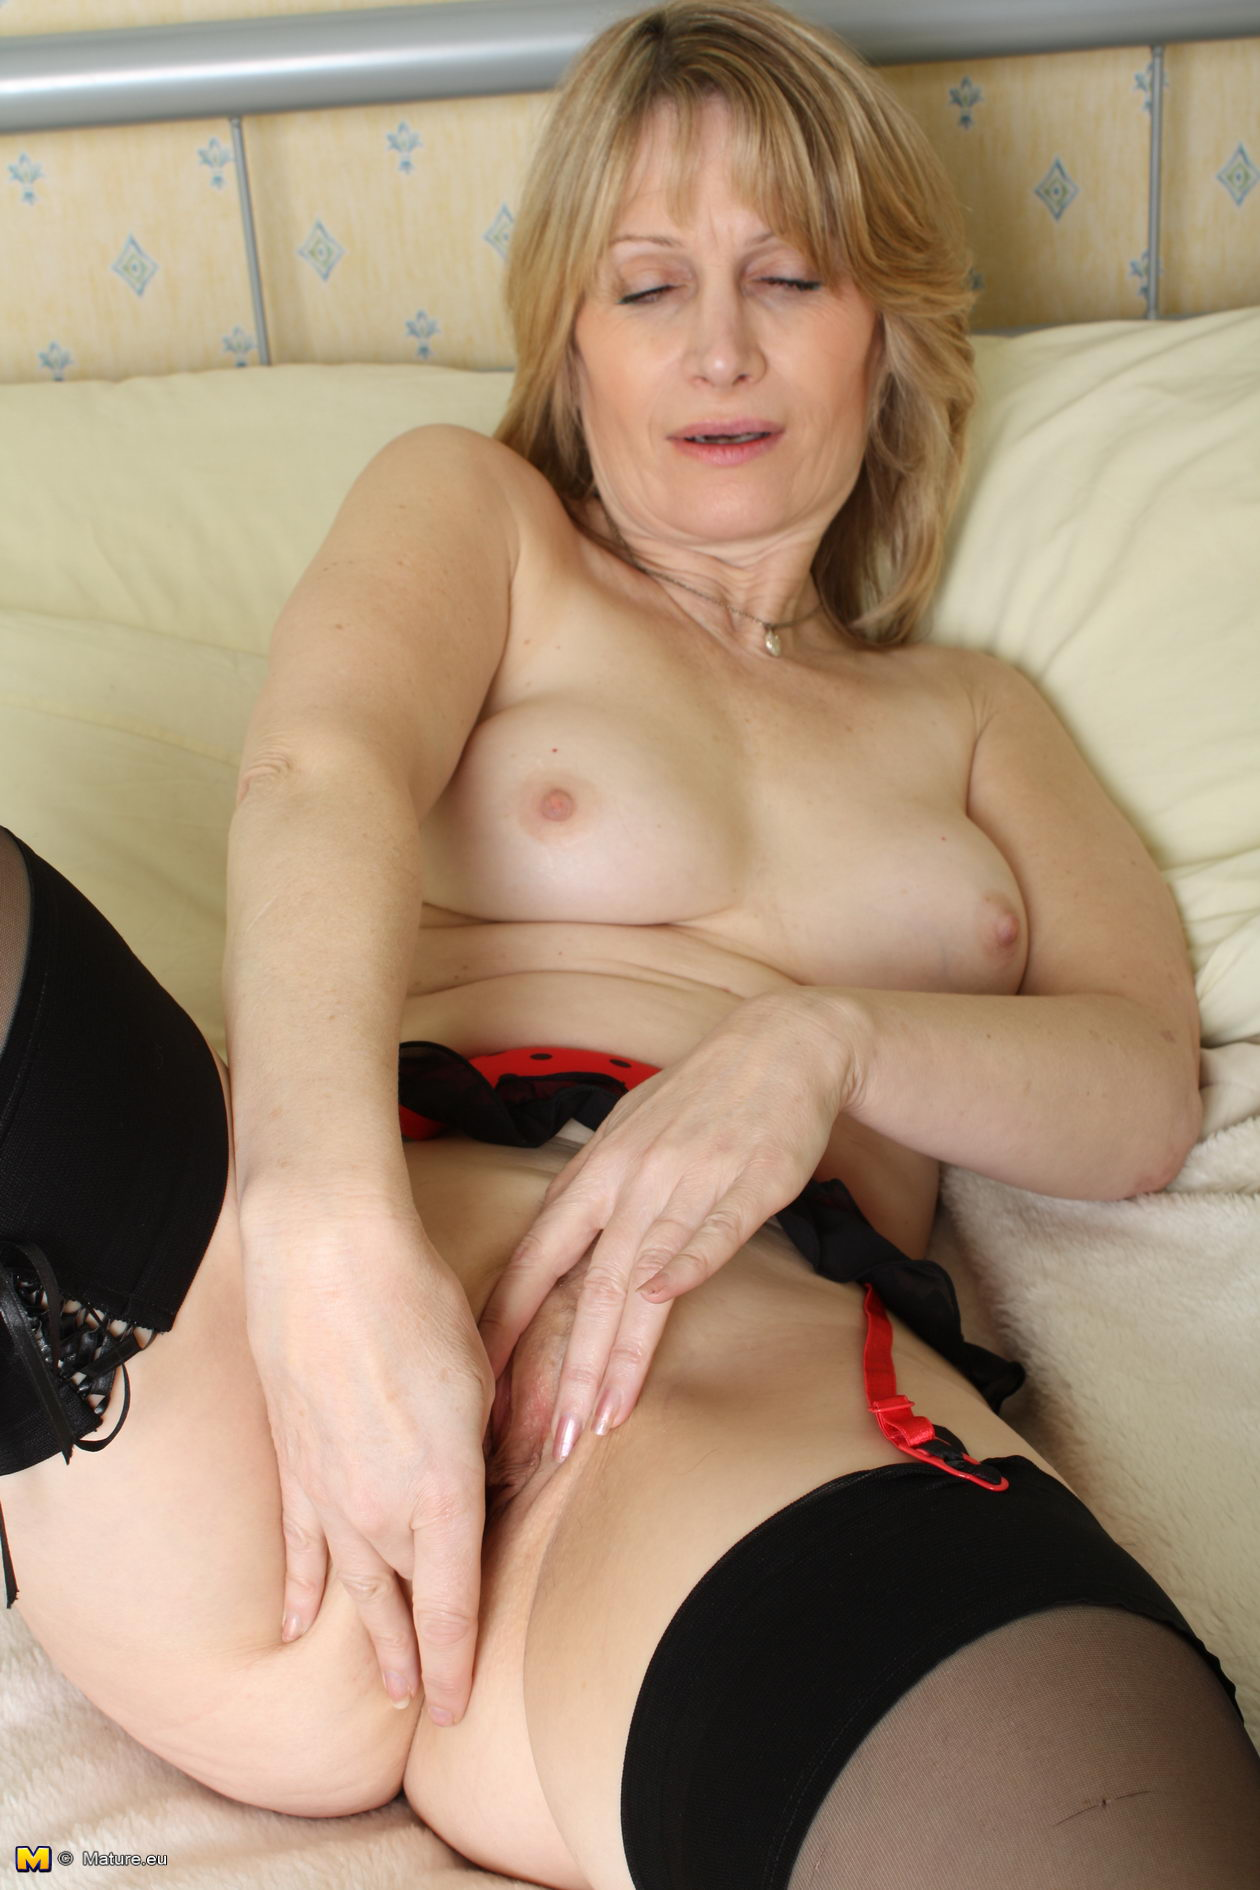 MommyBB Busty Euro MILF Maid is